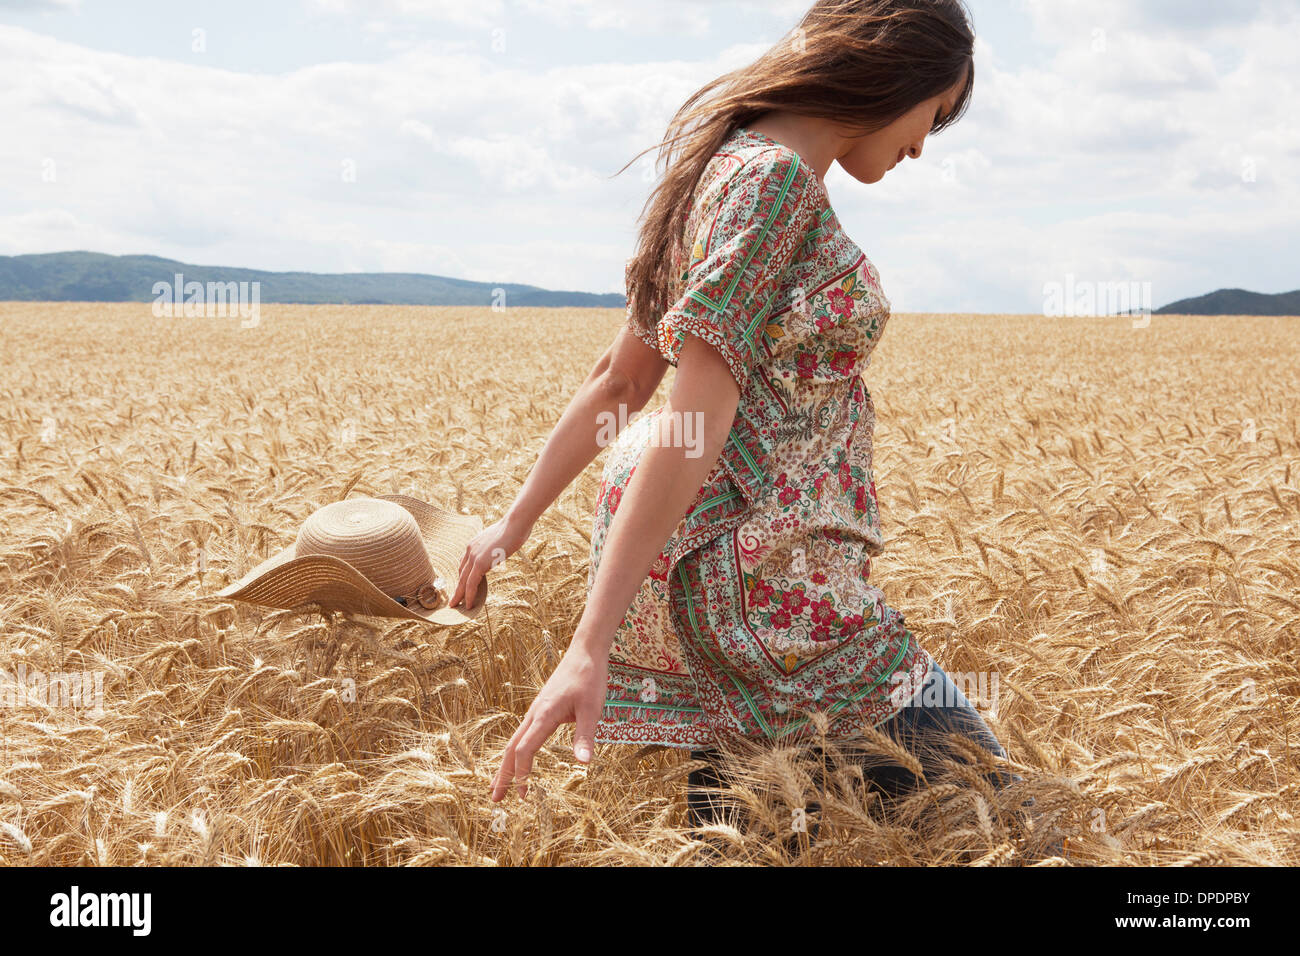 Mid adult woman walking through wheat field - Stock Image